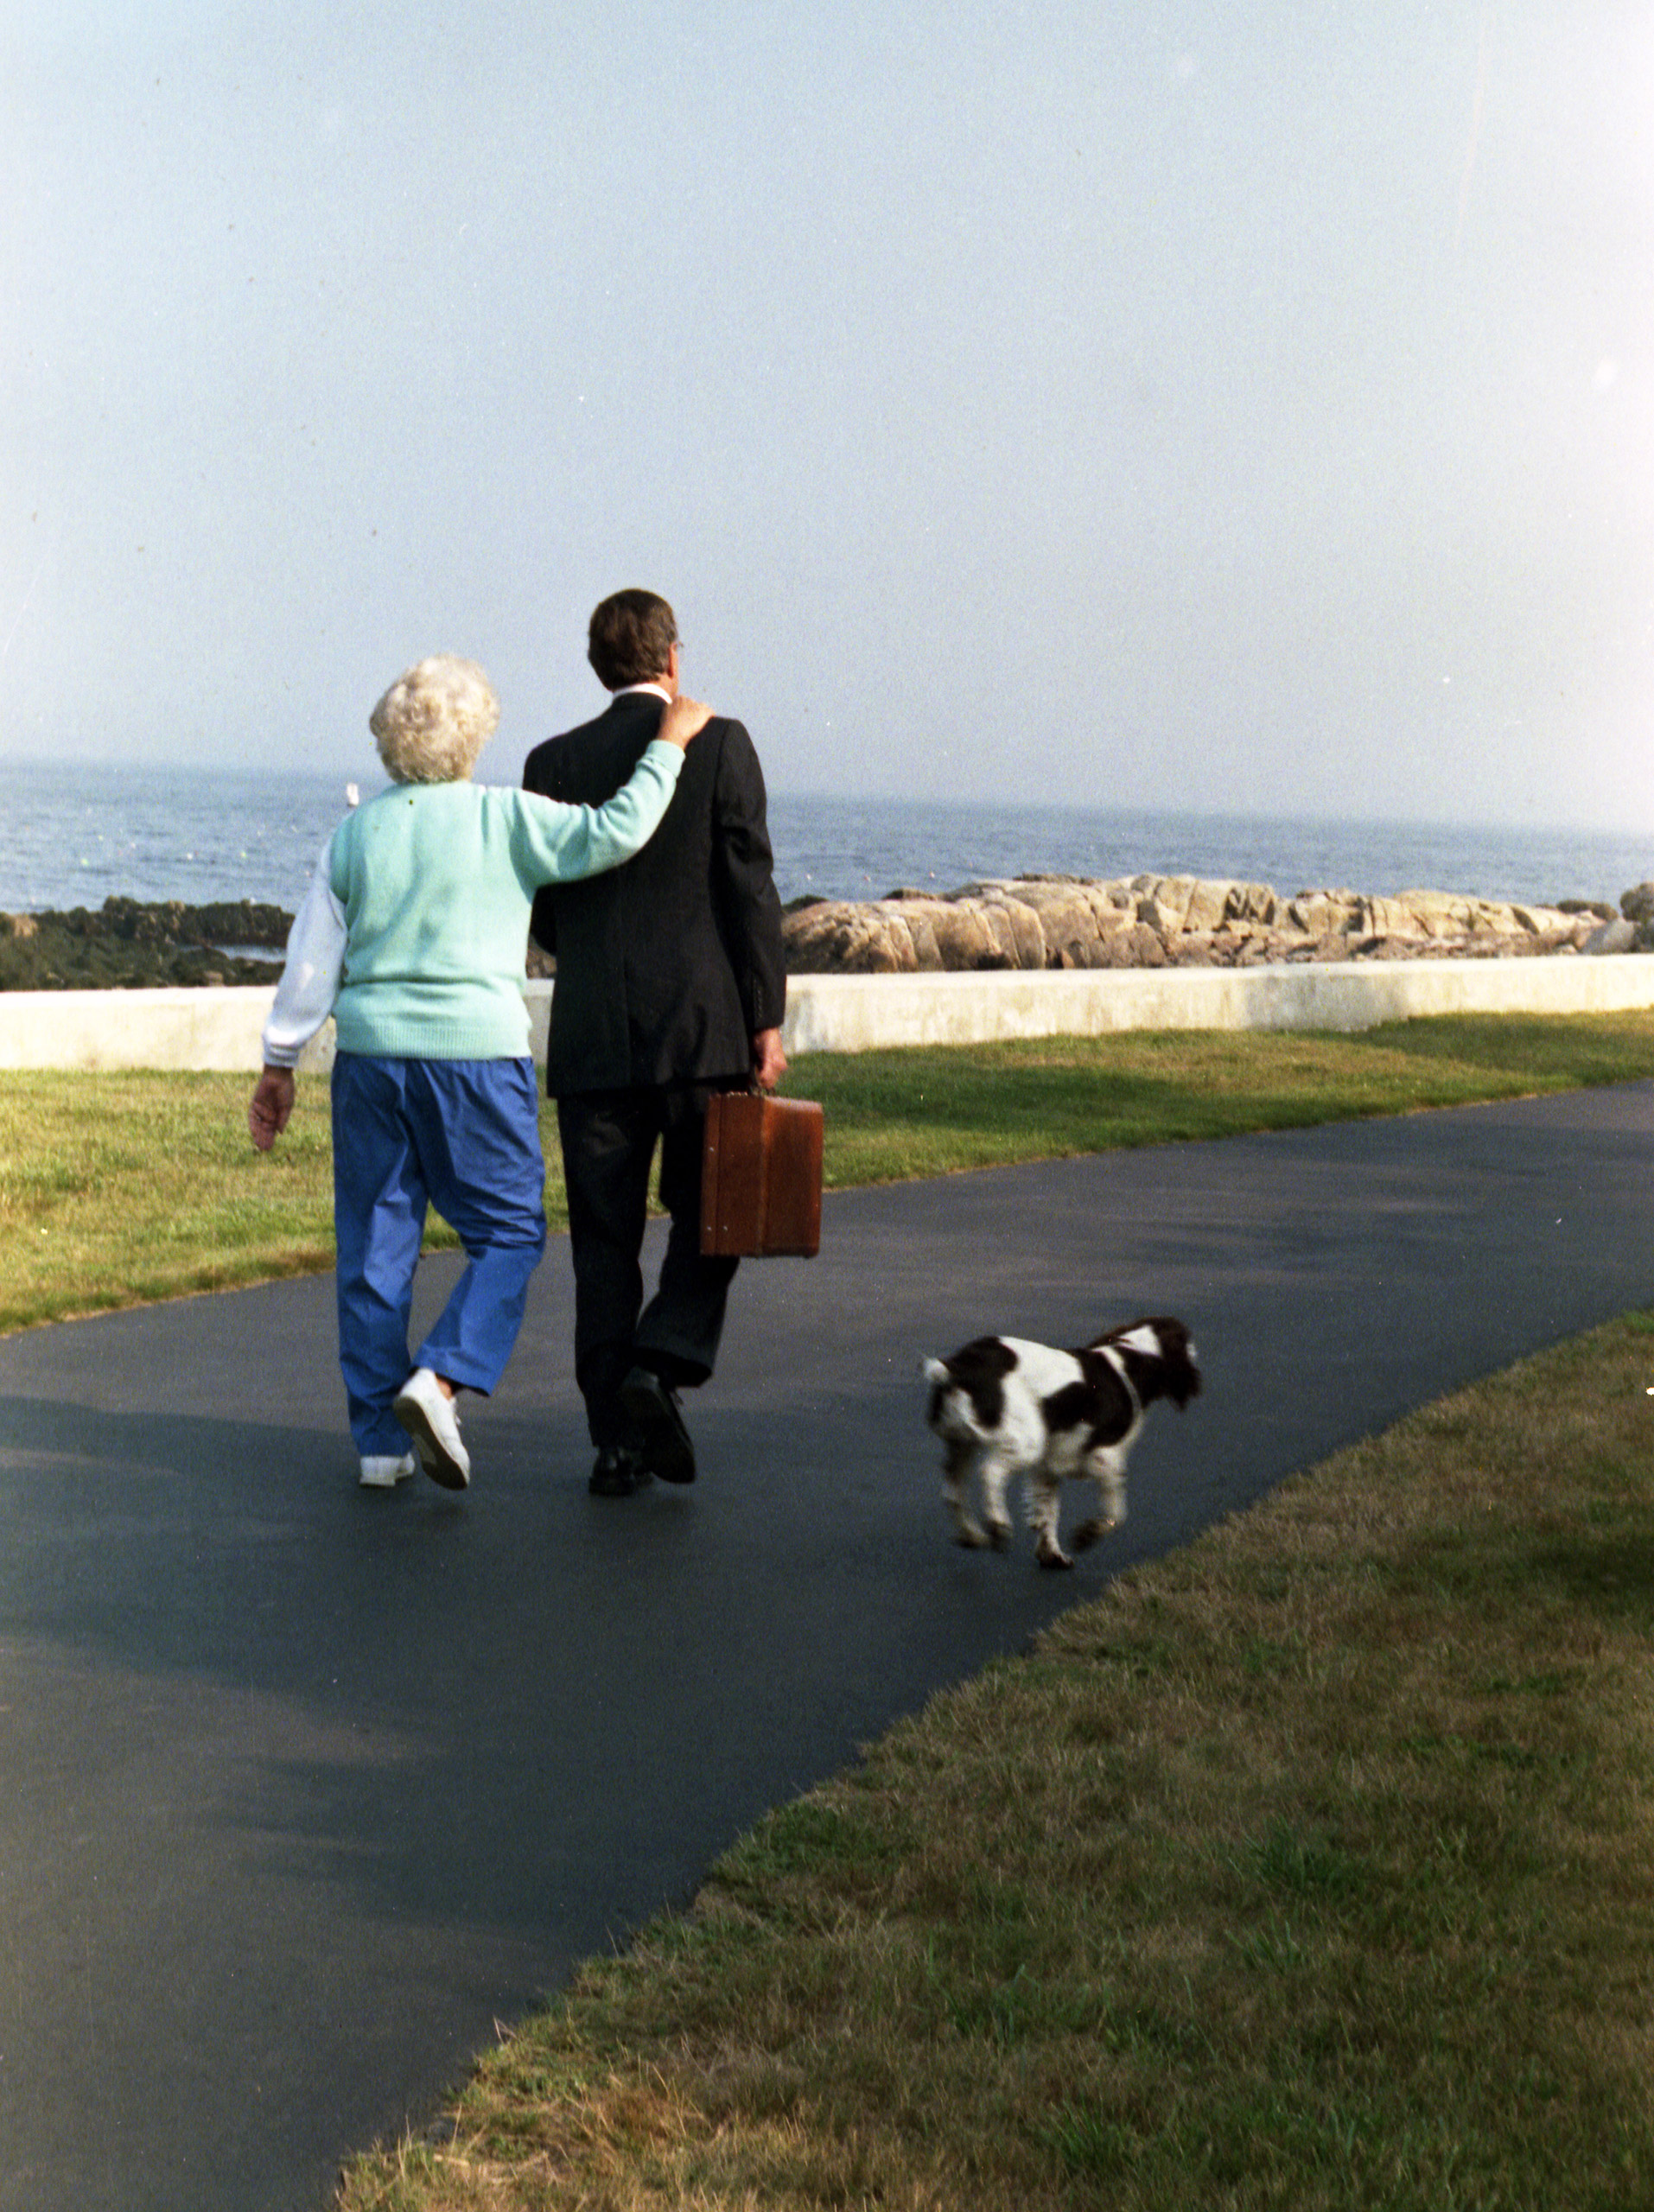 President George H.W. and Mrs. Barbara Bush walk down the driveway as their dog Millie trots alongside, Walker's Point, Kennebunkport, ME, Aug. 16, 1989.